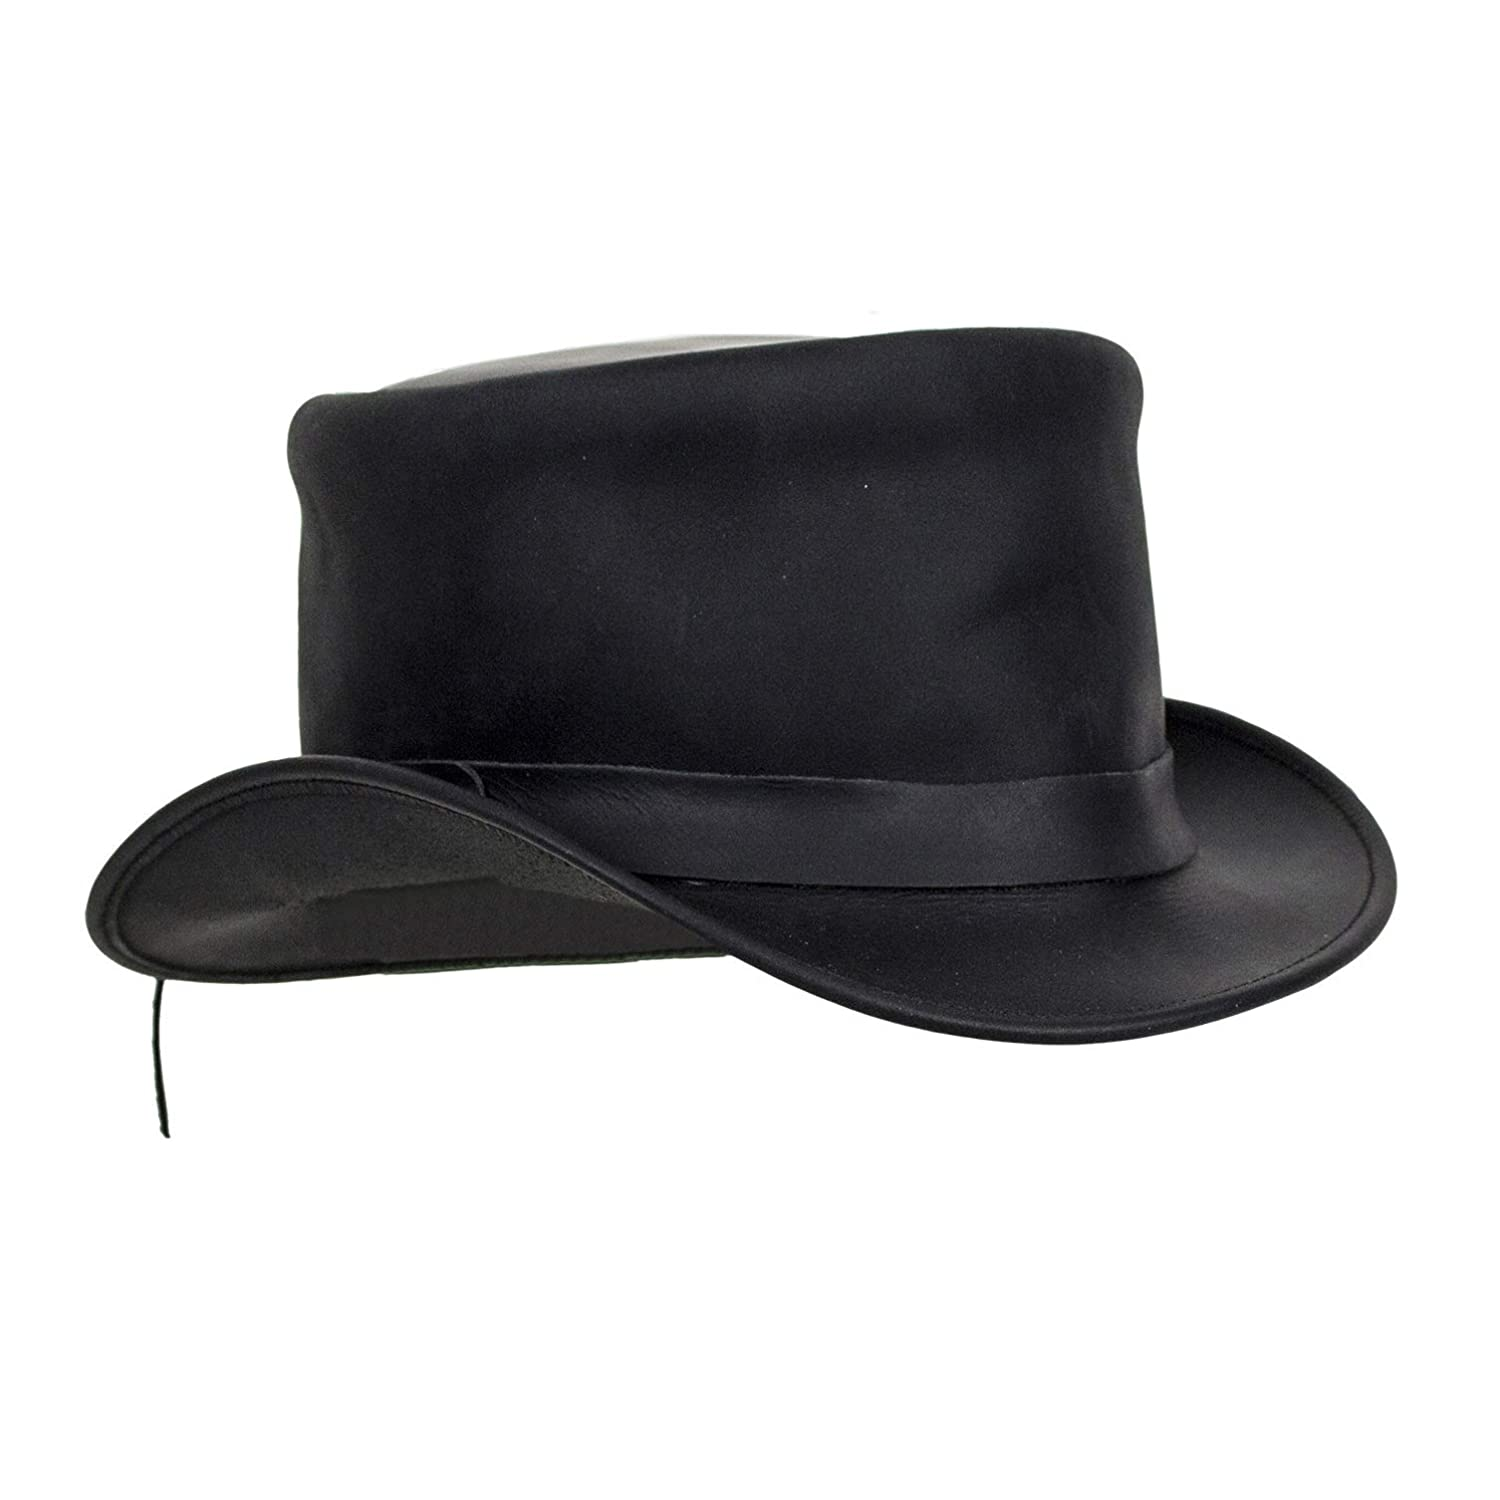 Victorian Men's Clothing, Fashion – 1840 to 1890s Black Leather Deadman Top Hat $69.00 AT vintagedancer.com